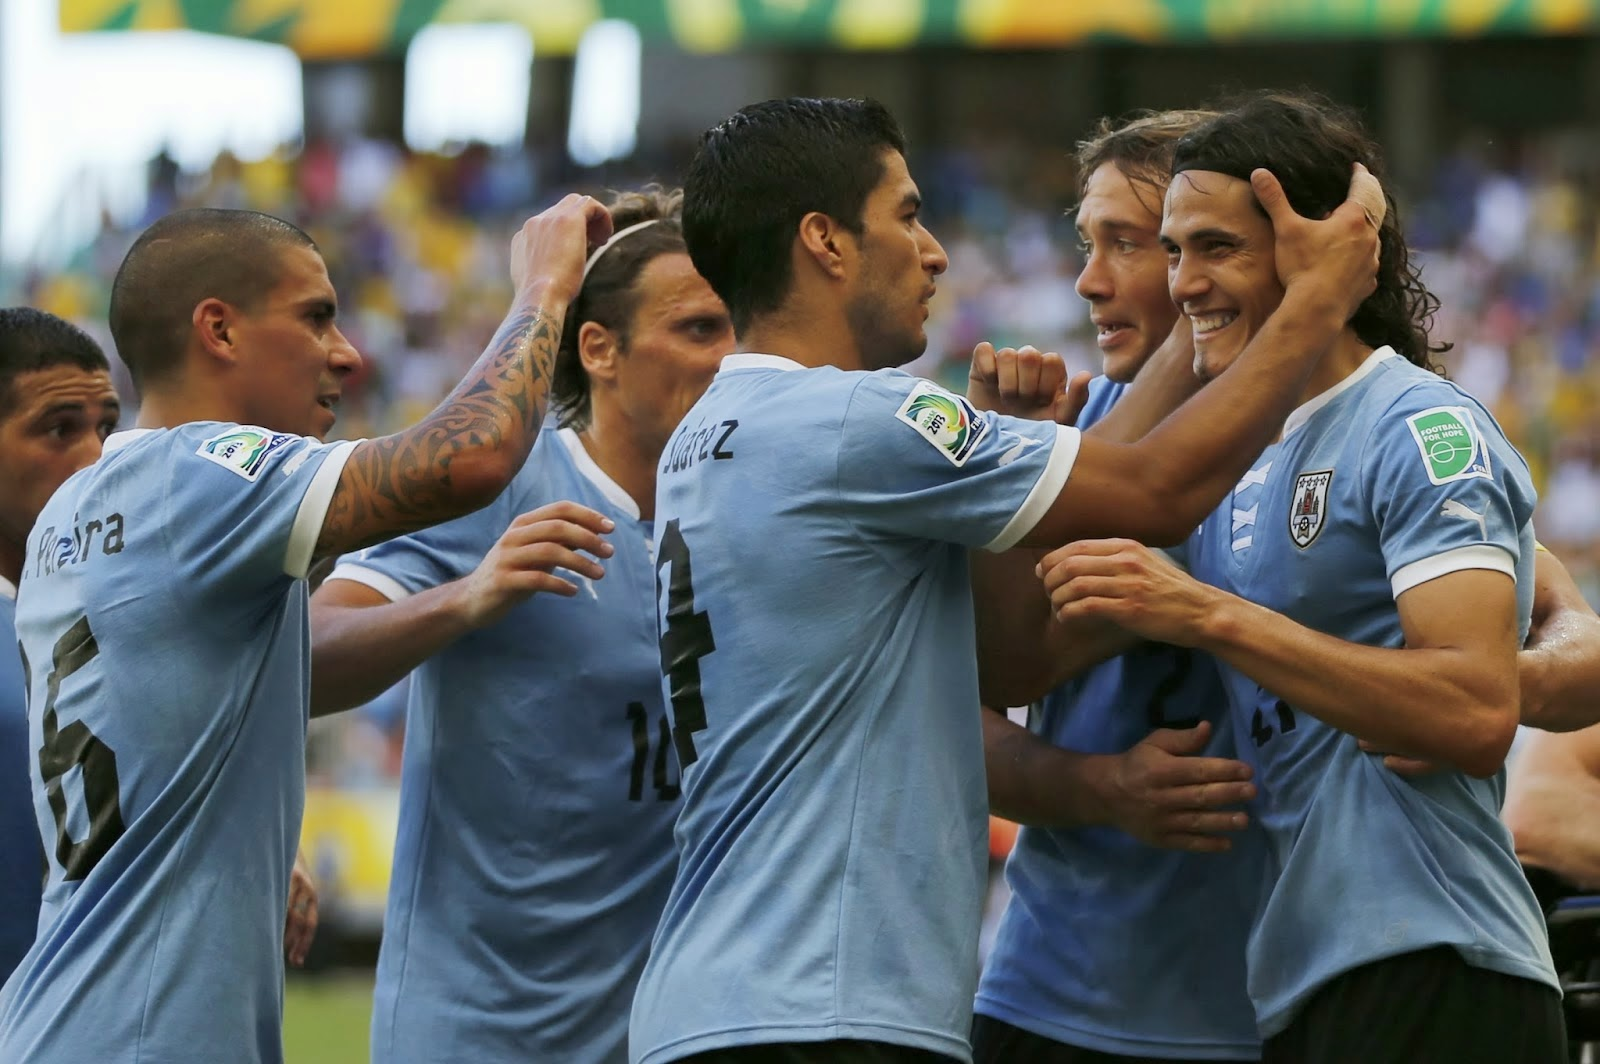 Luis Suarez Cavani Watch Uruguay live online. World Cup Brazil 2014 games free streaming. Best websites for football matches without signing up.